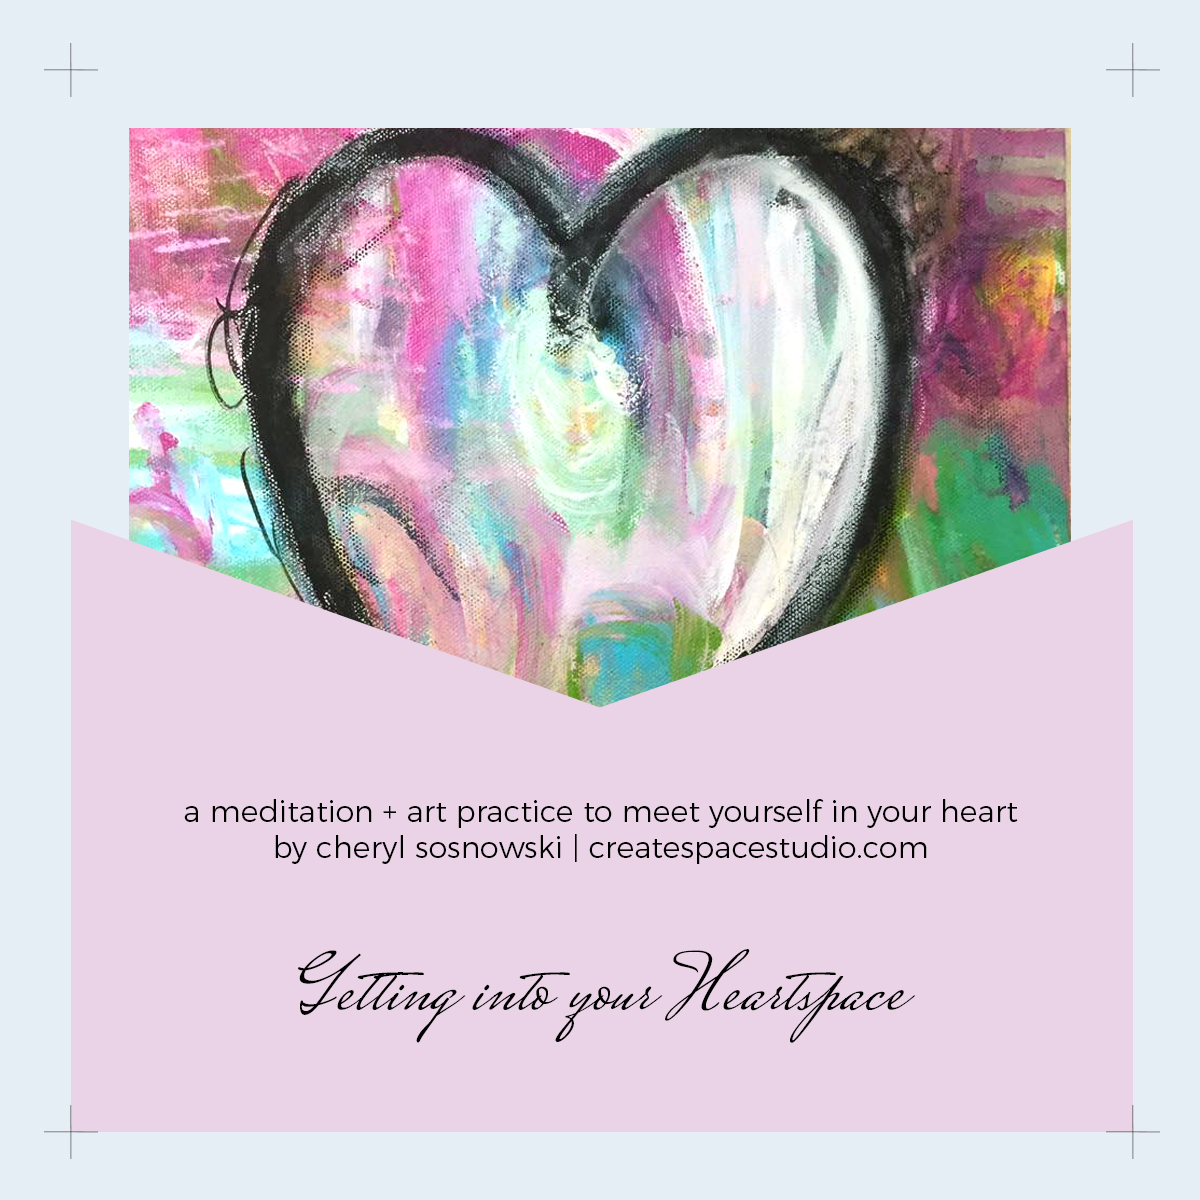 heartspace meditation and art project